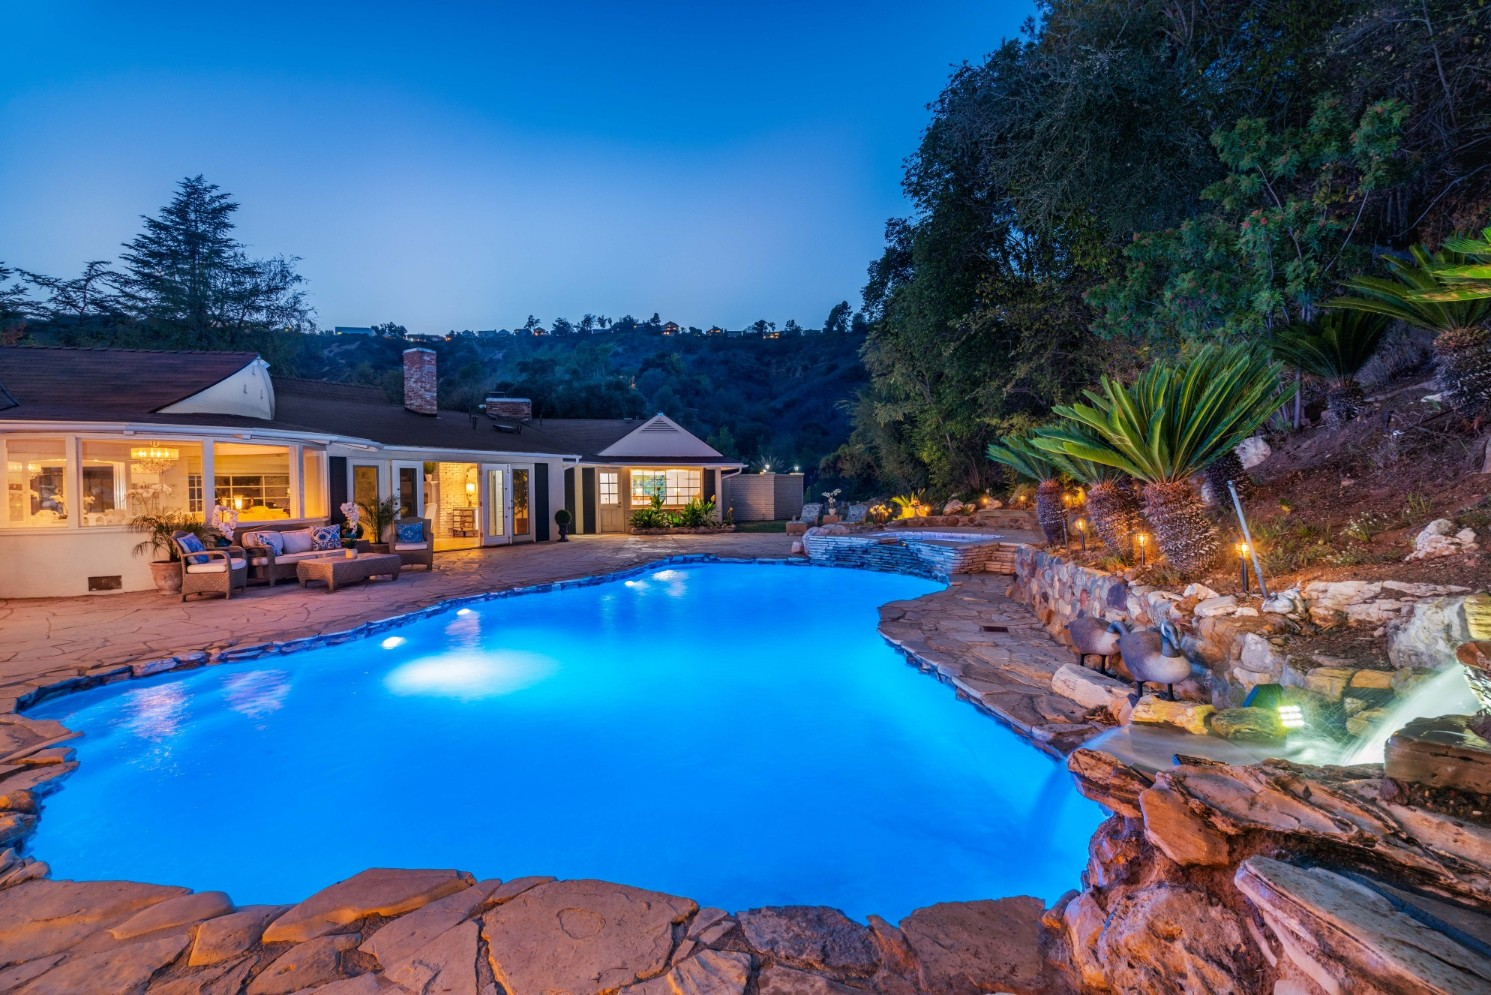 2660-BENEDICT-CANYON-BEVERLY-HILLS